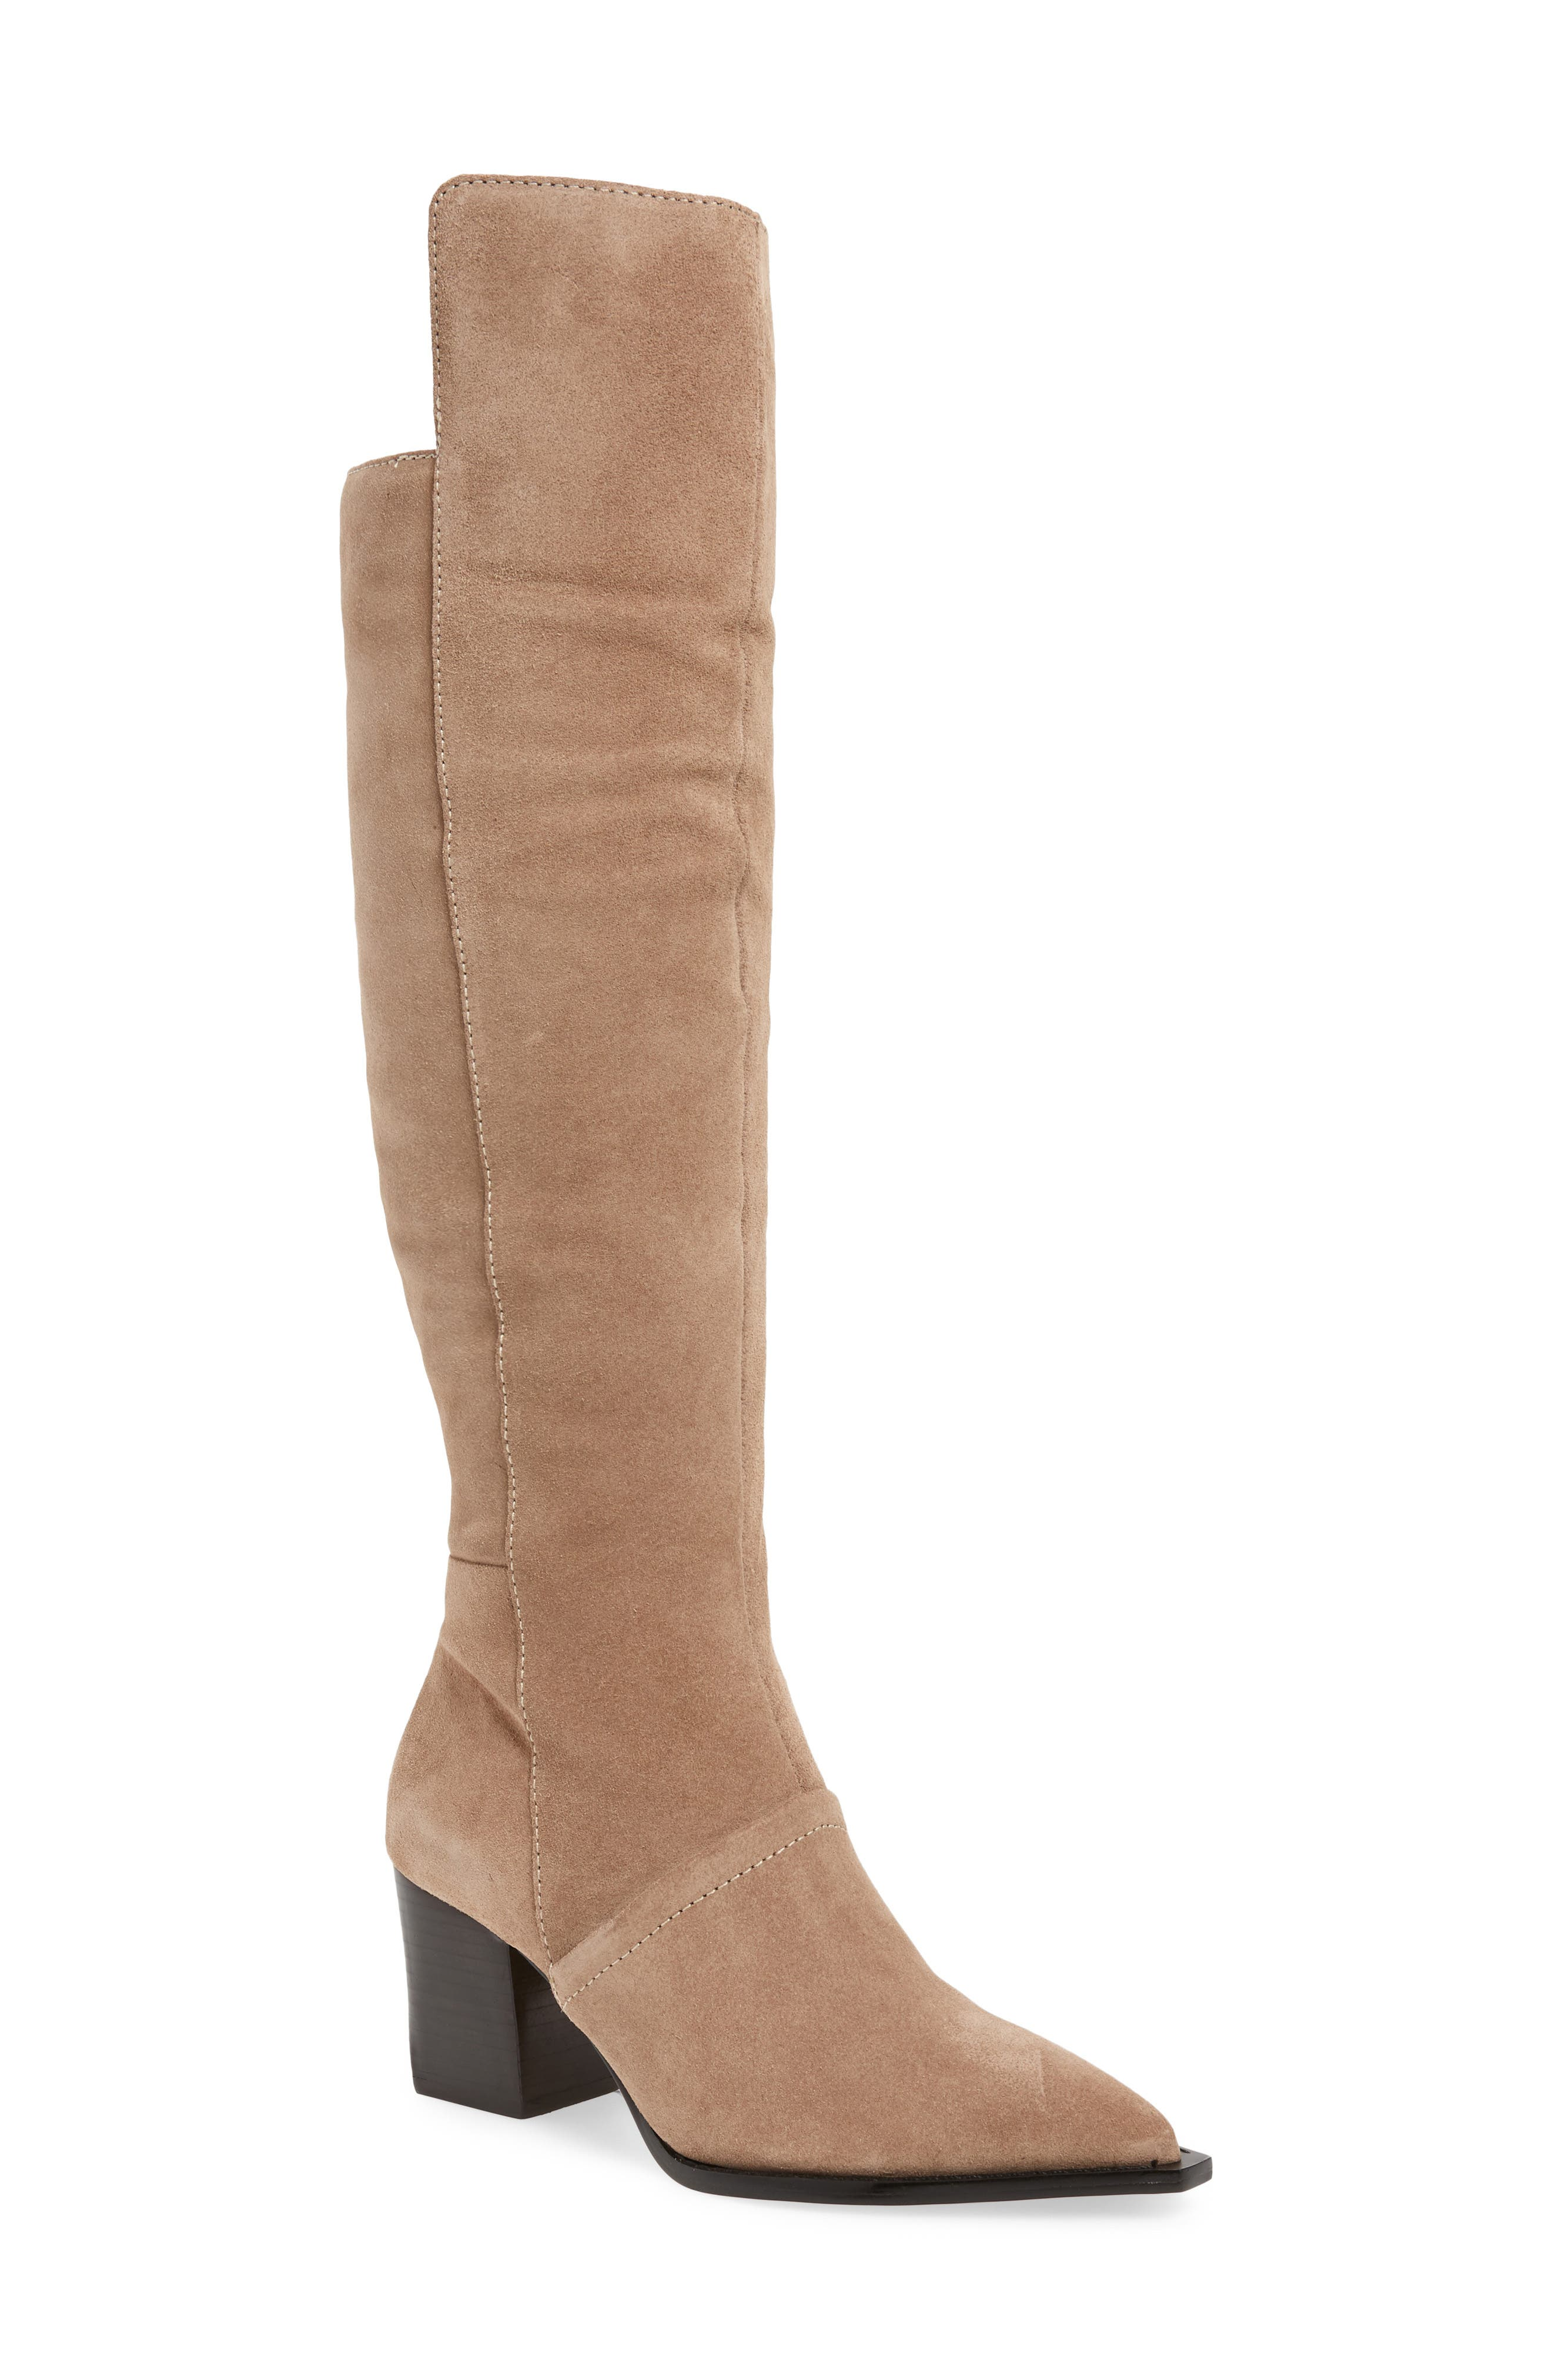 LUST FOR LIFE Tania Knee High Boot in Taupe Leather